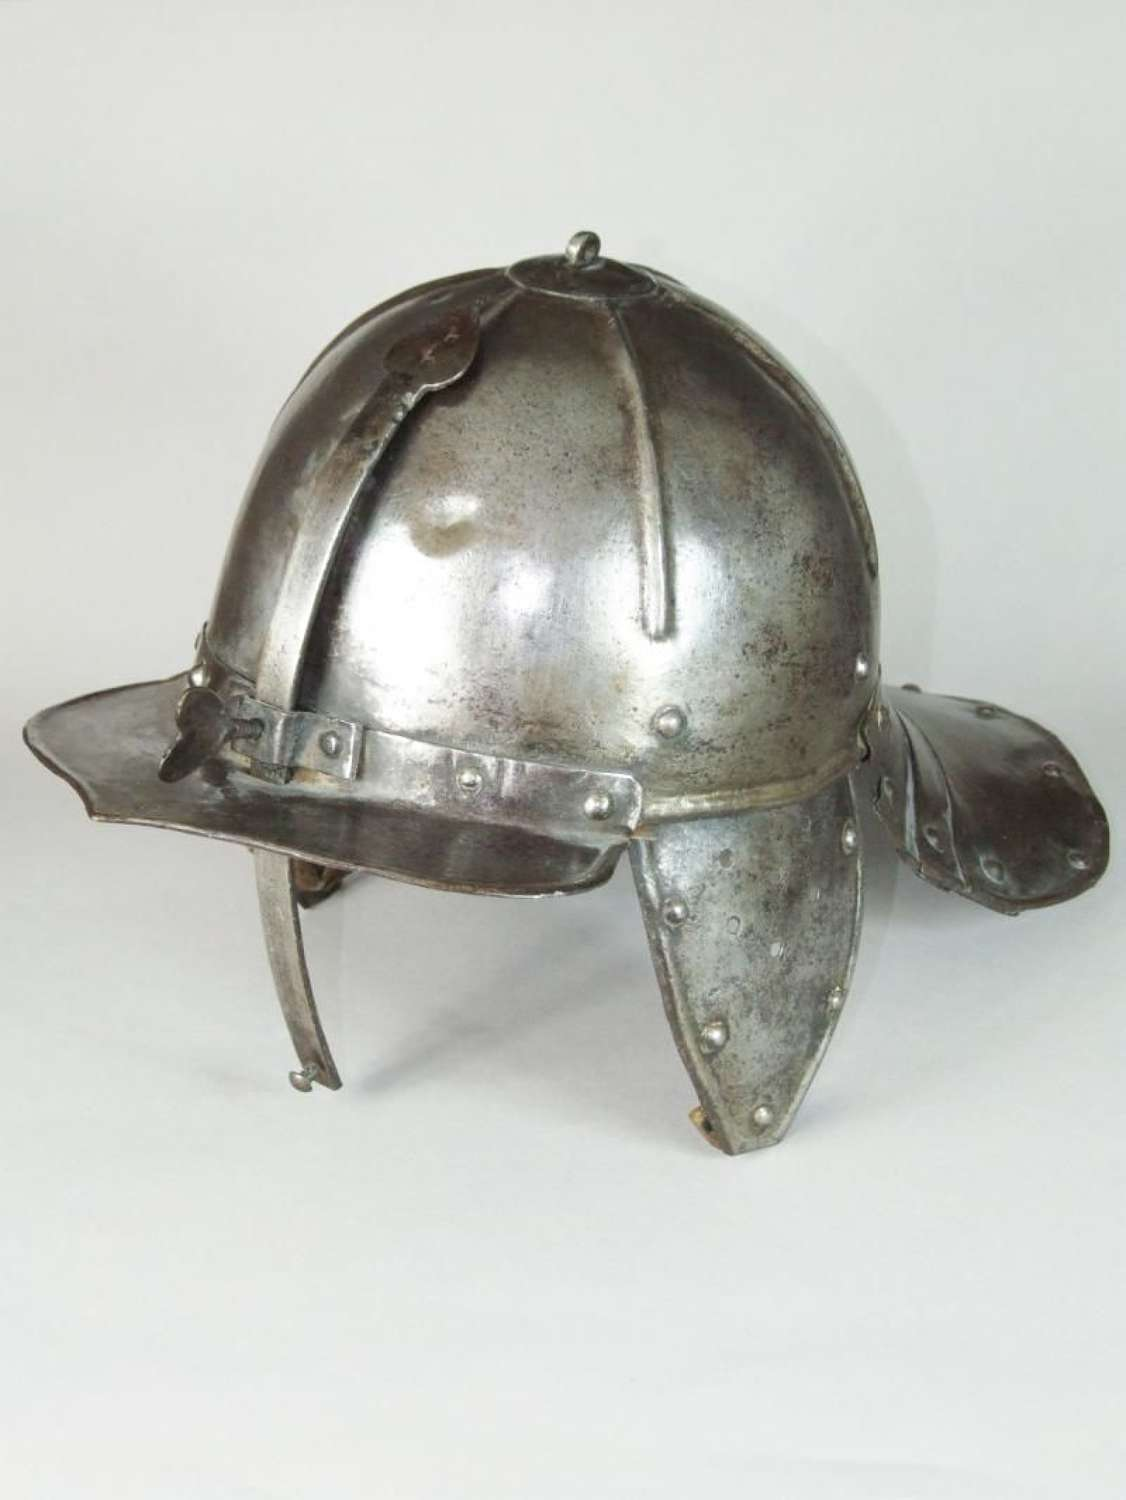 Zischägge or Lobster Tail Helmet Dating from about 1650.